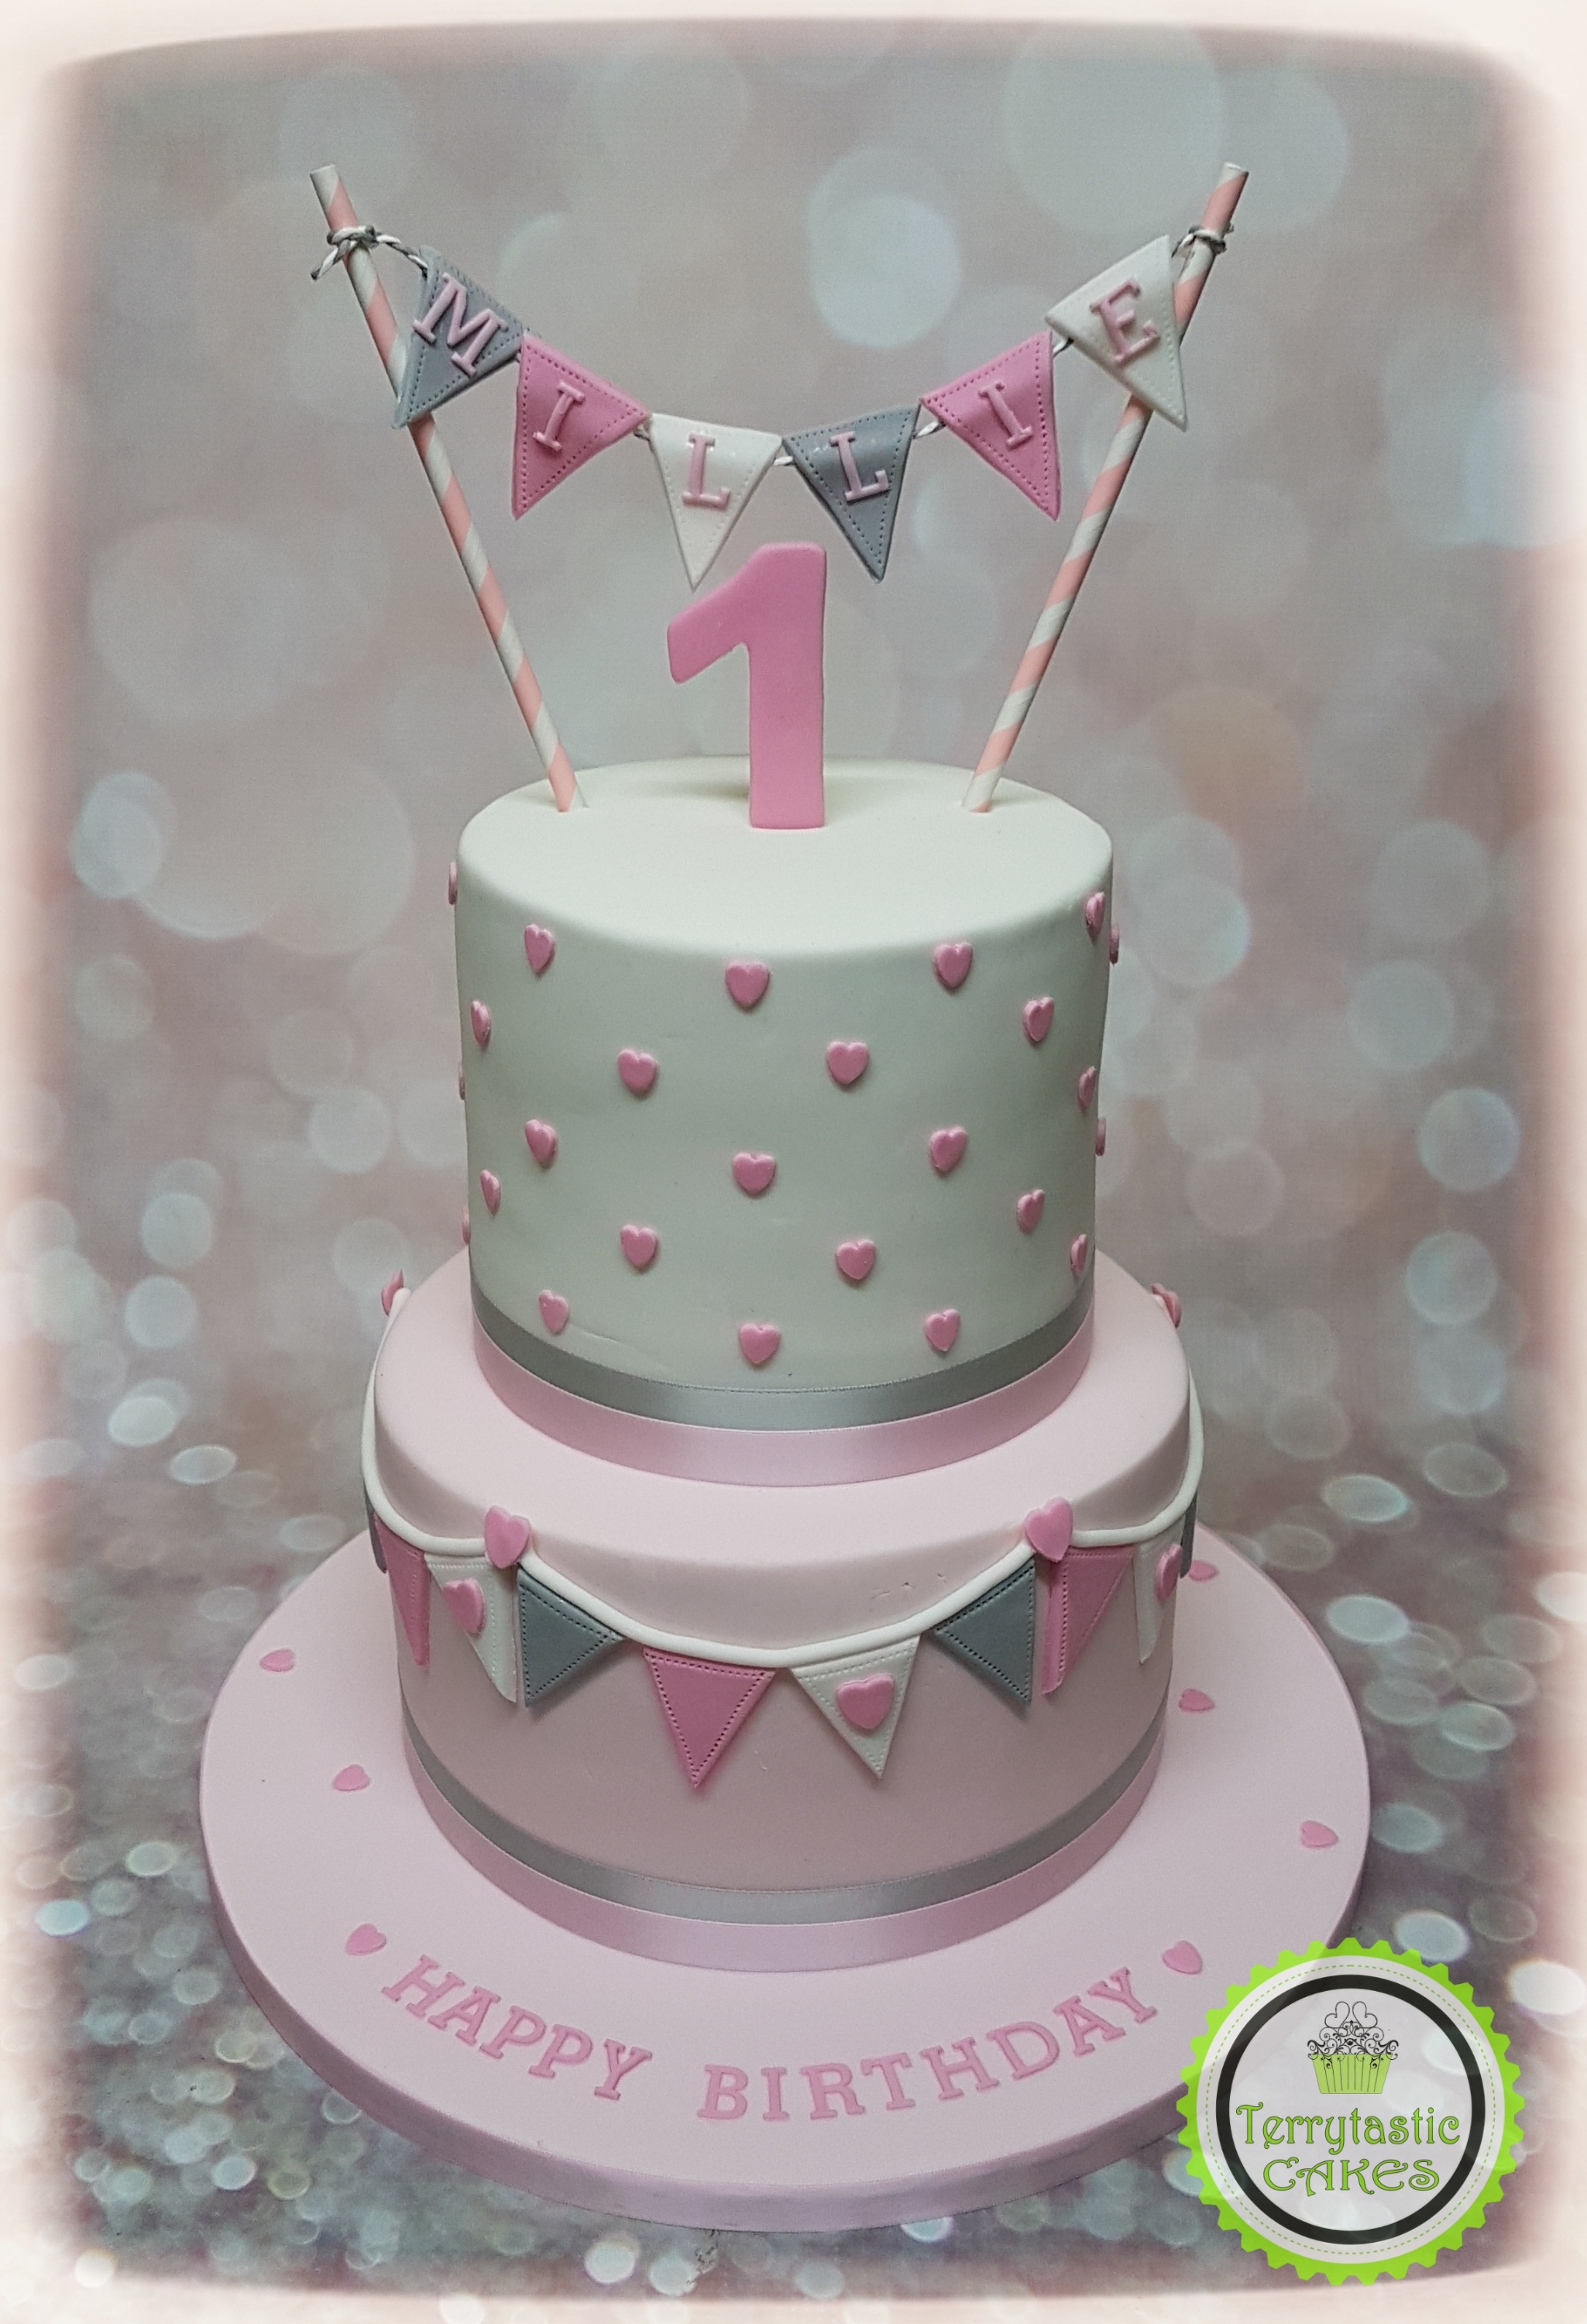 1St Birthday Cake For Girl Pink Grey Bunting 1st Birthday Cake Girl Terrytastic Cakes